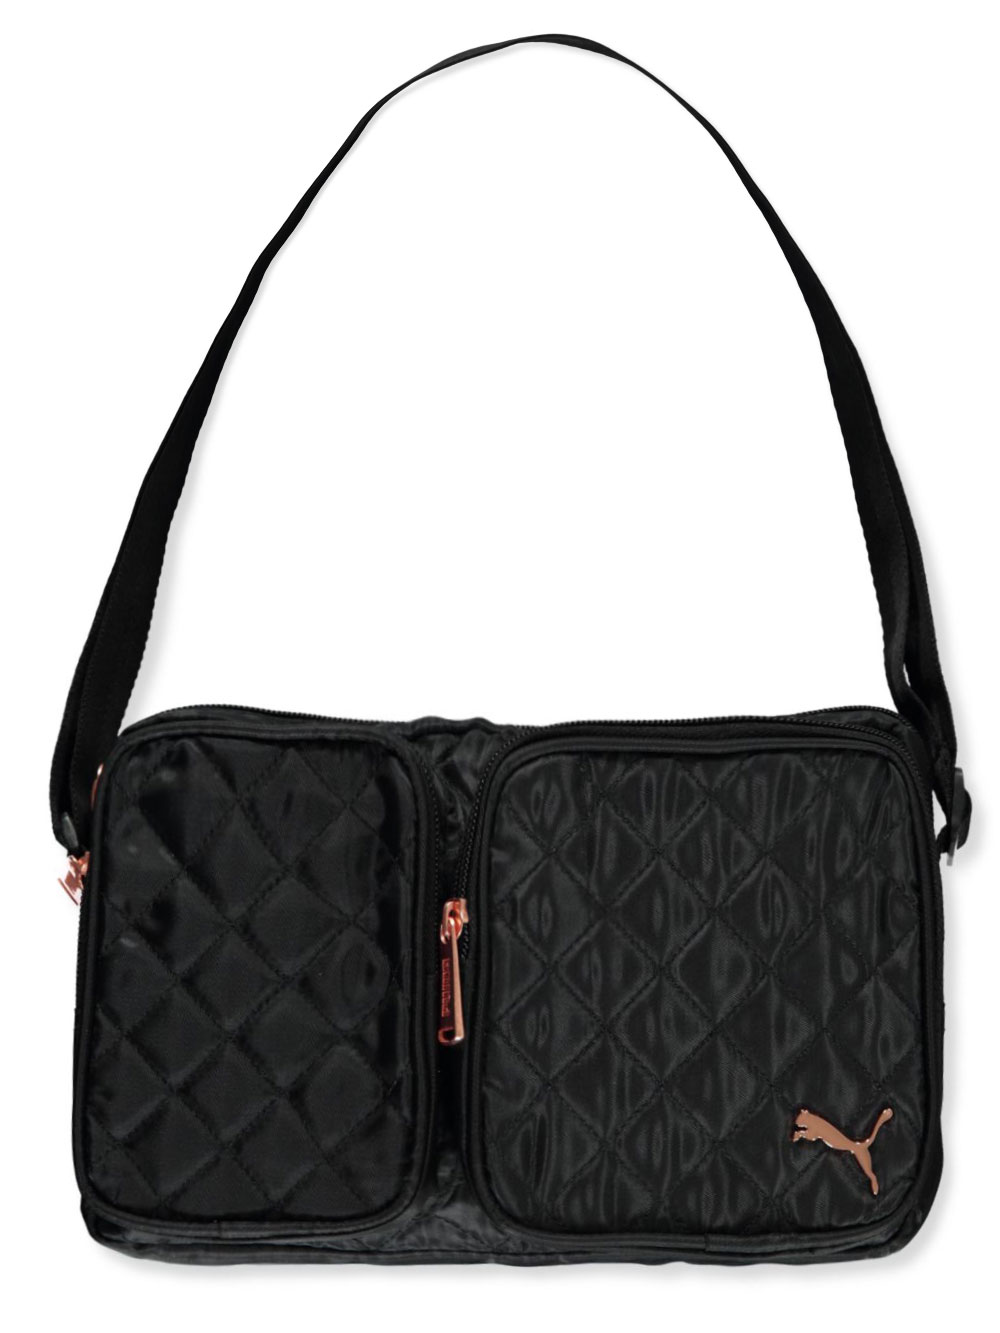 Girls Black Camo Handbags